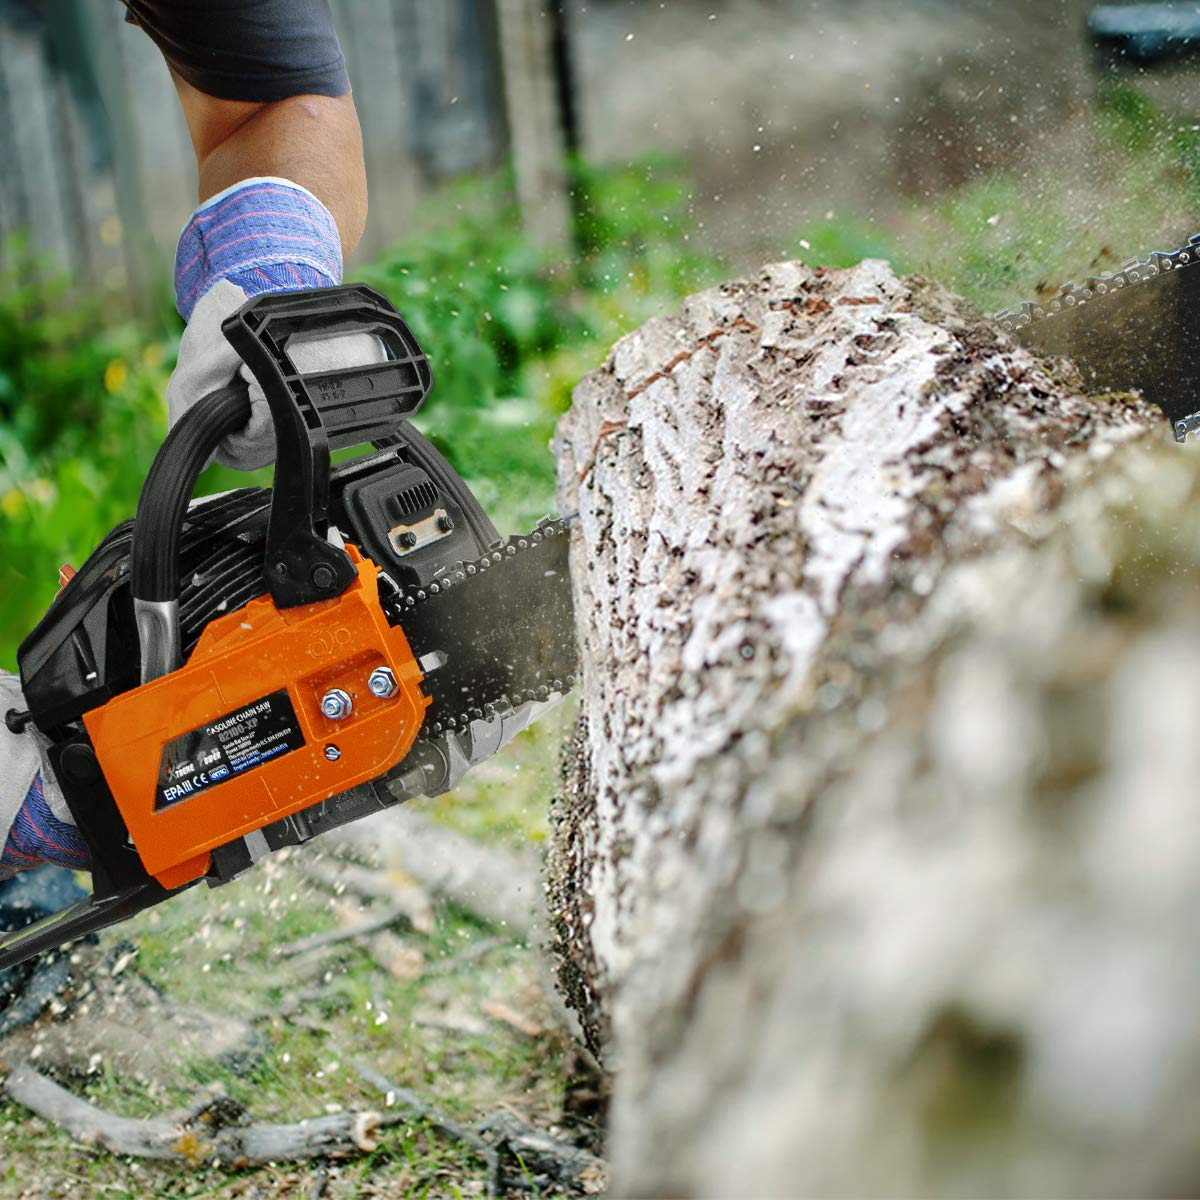 XtremepowerUS 82100-XP Chainsaws product image 3